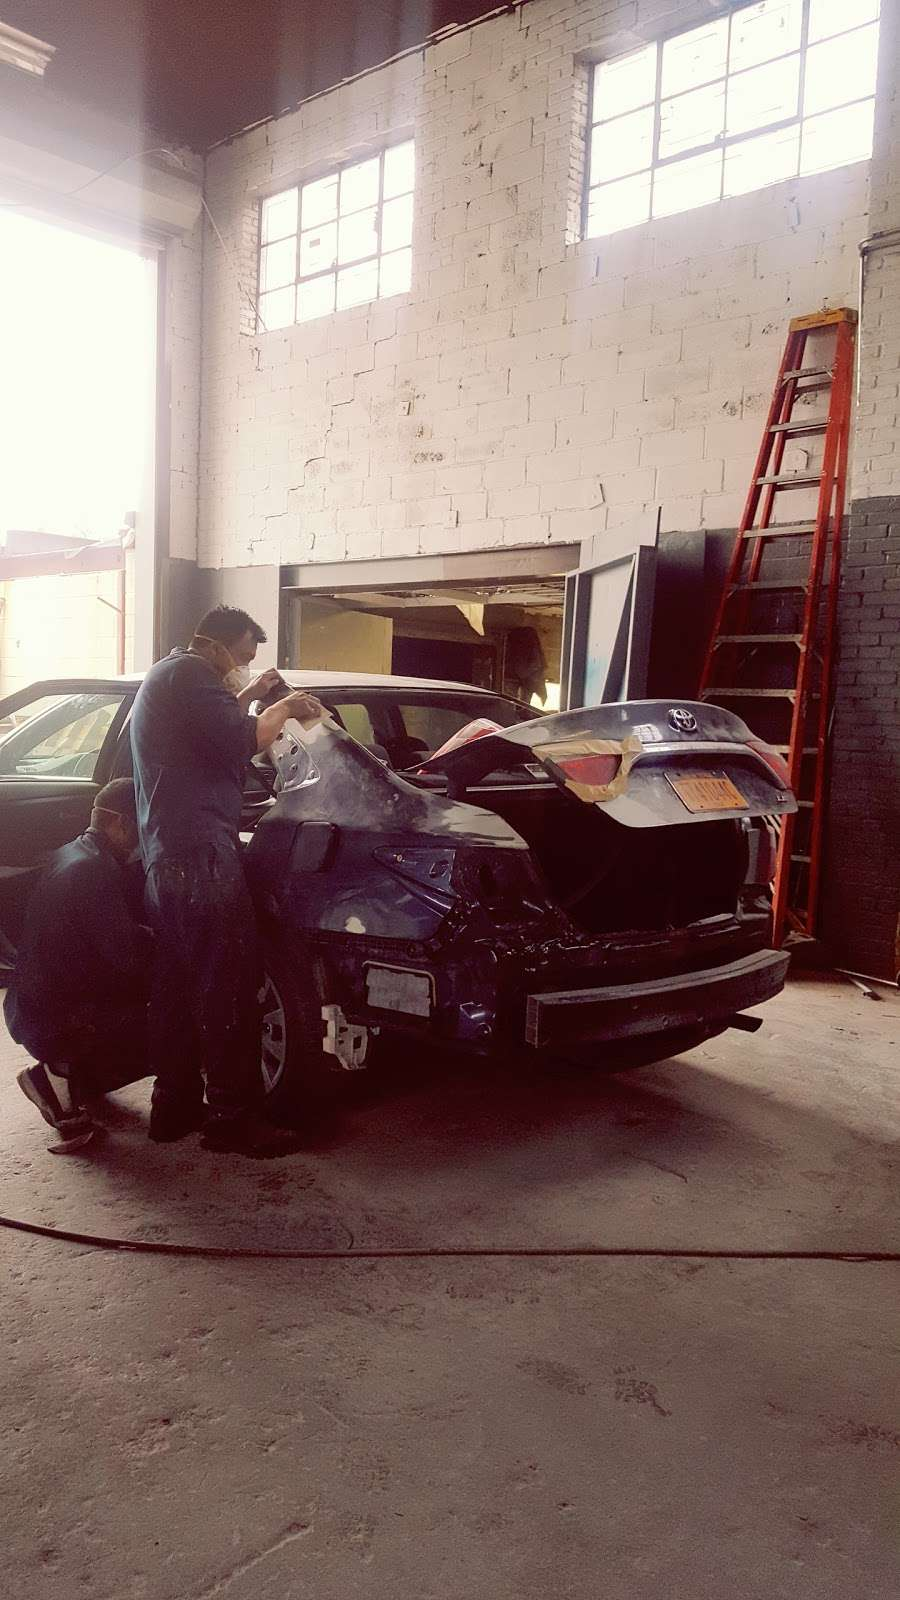 Jose Ordonez Auto Repair and Body Shop - car repair  | Photo 6 of 10 | Address: 88-43 76th Ave, Glendale, NY 11385, USA | Phone: (718) 896-0900